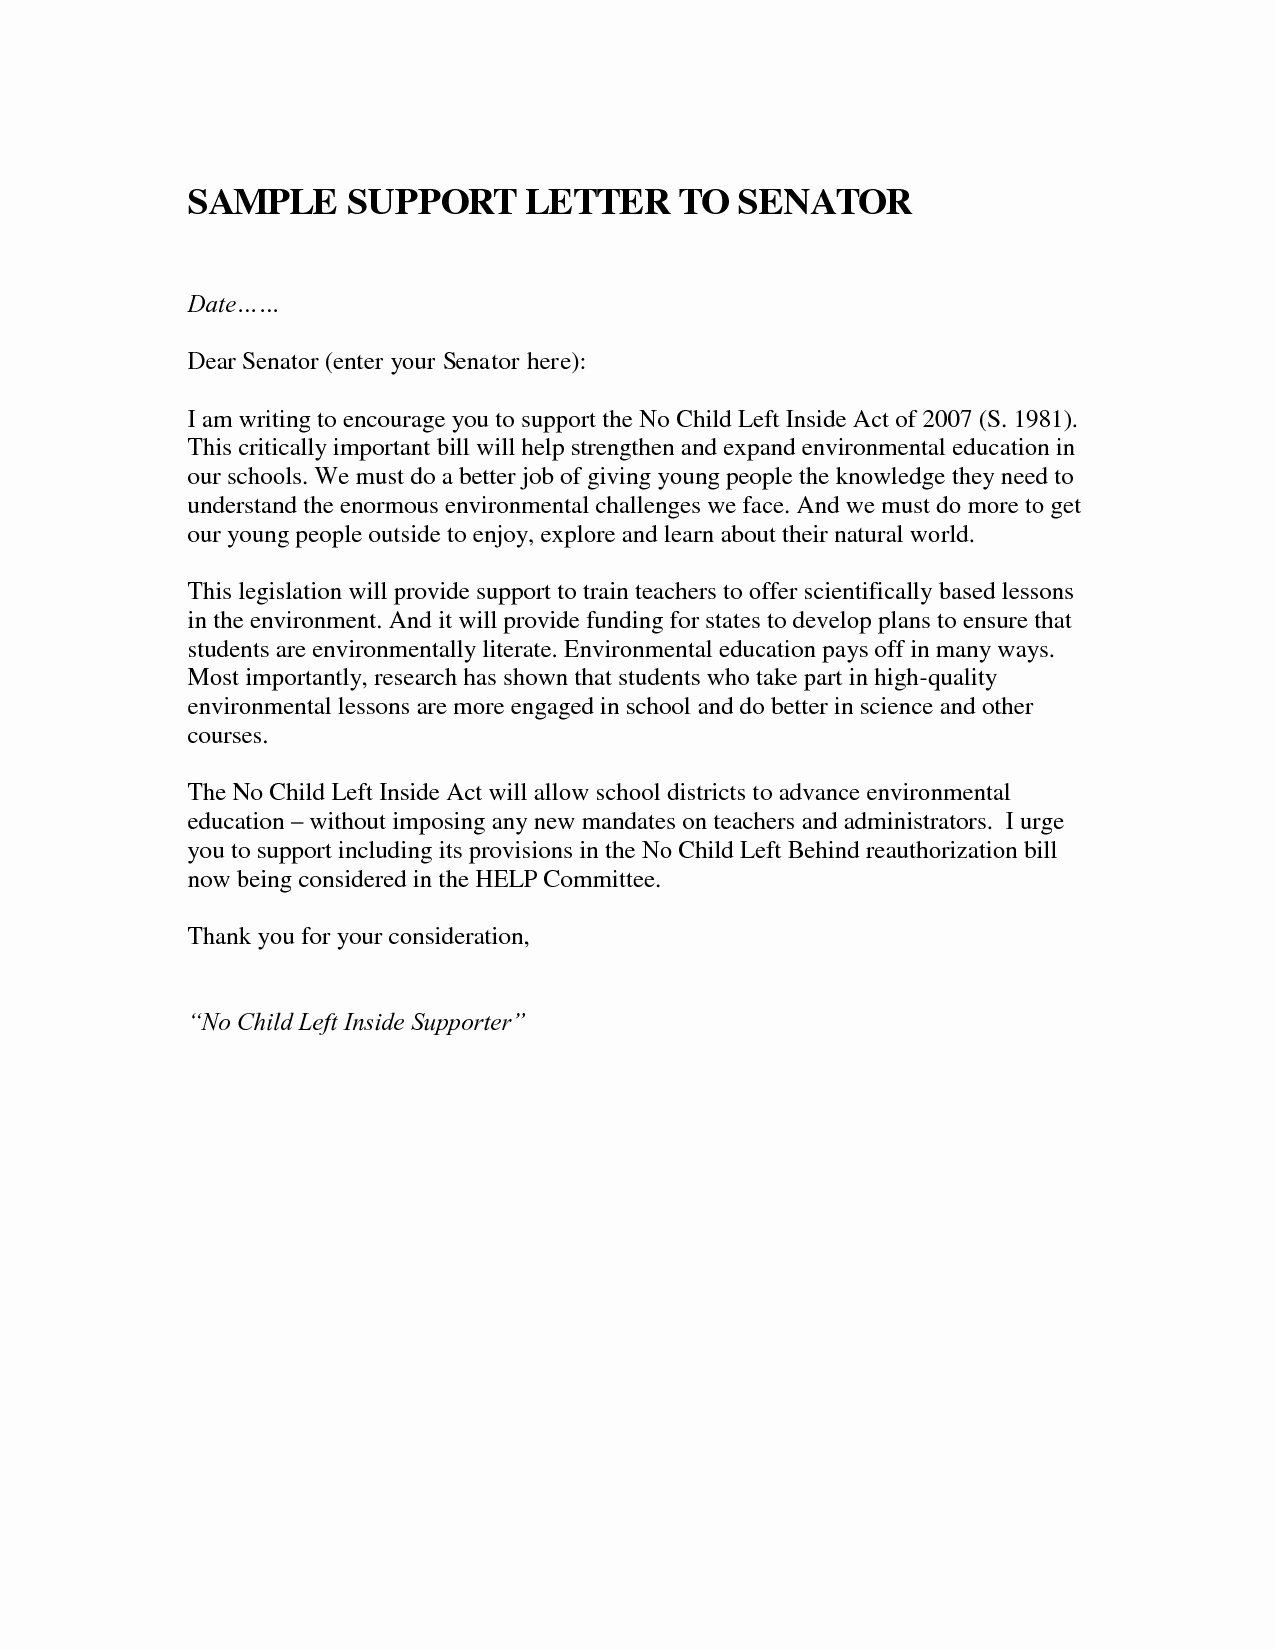 Letter to Congress format Fresh Sample Letter to Senator Icebergcoworking Icebergcoworking